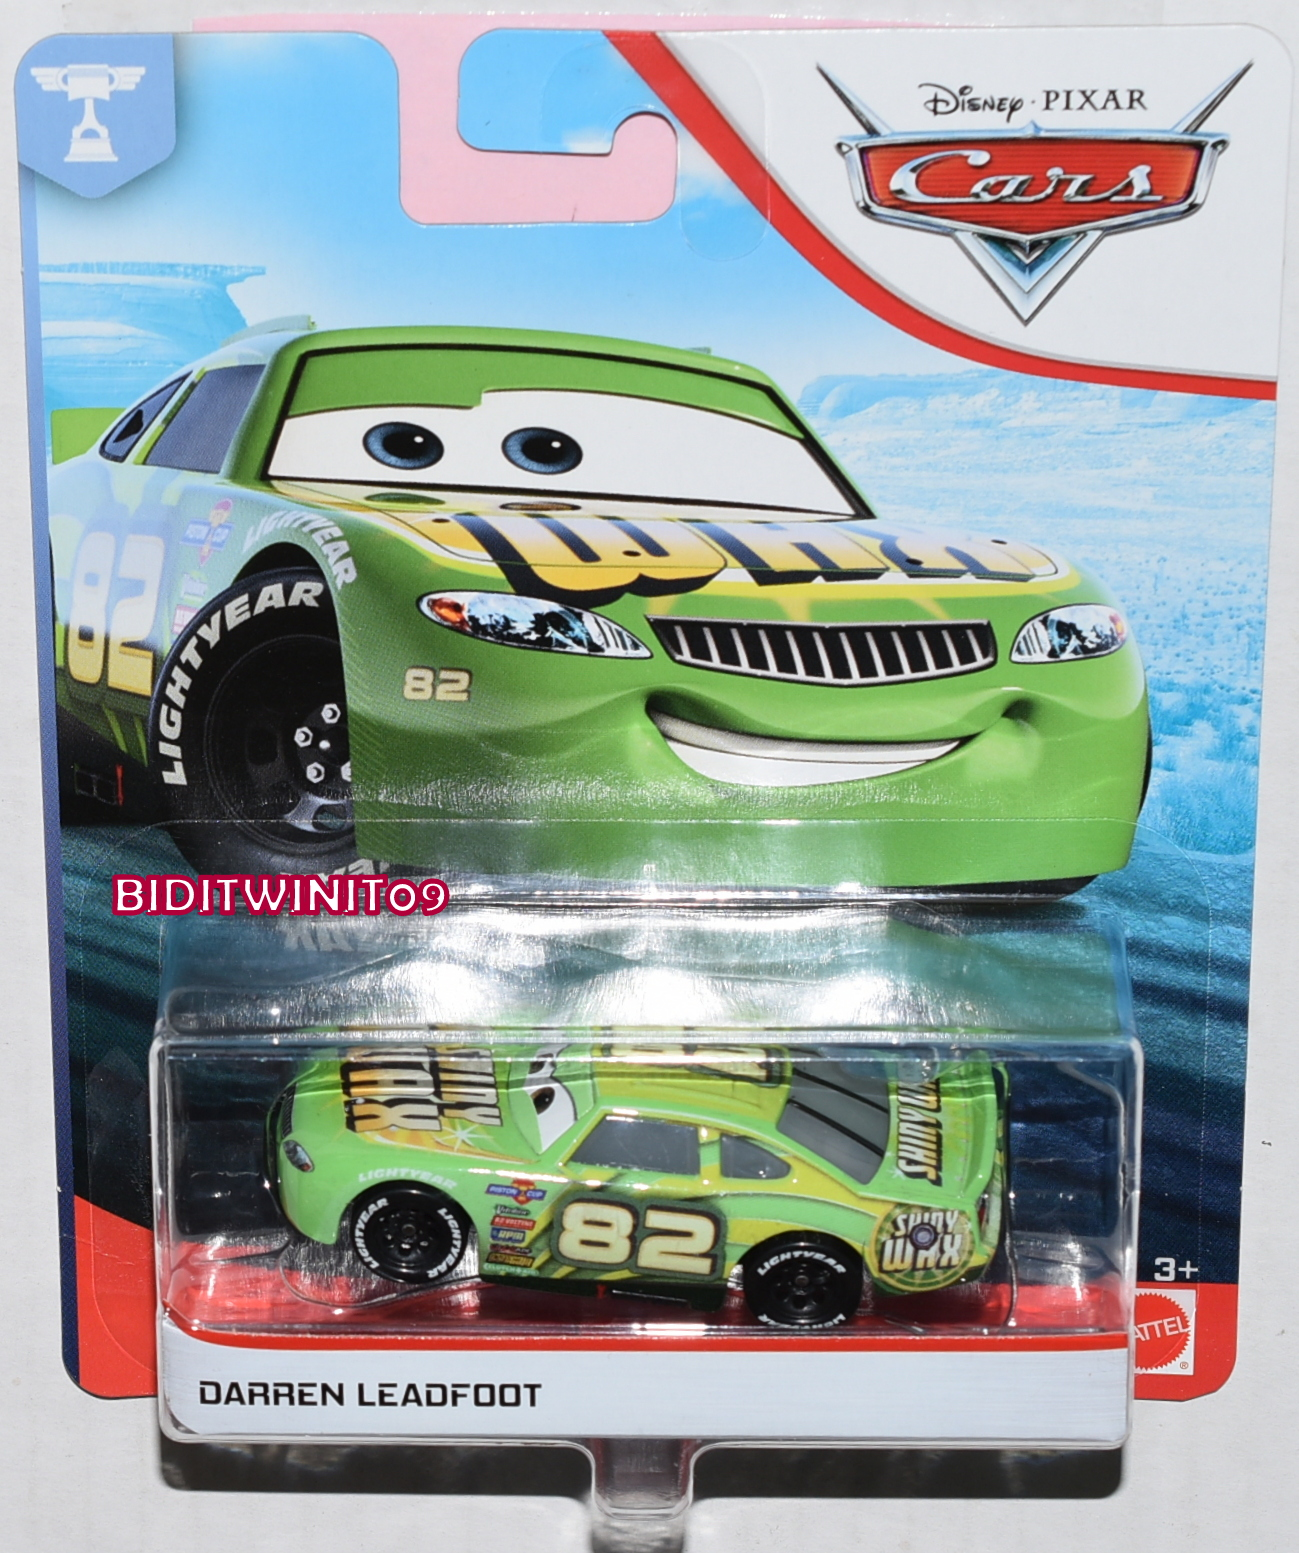 DISNEY PIXAR CARS DARREN LEADFOOT E+